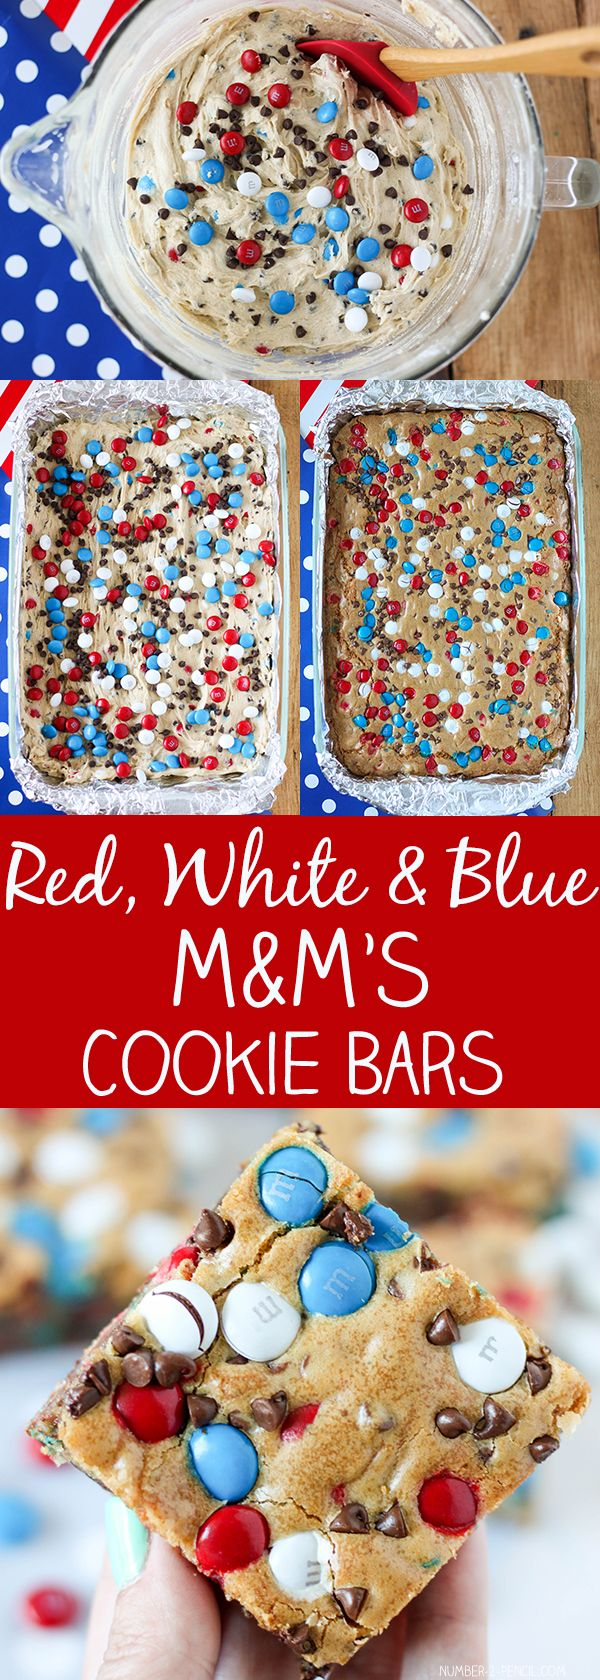 Red, White & Blue M&M'S Cookie Bars #labordaydesserts